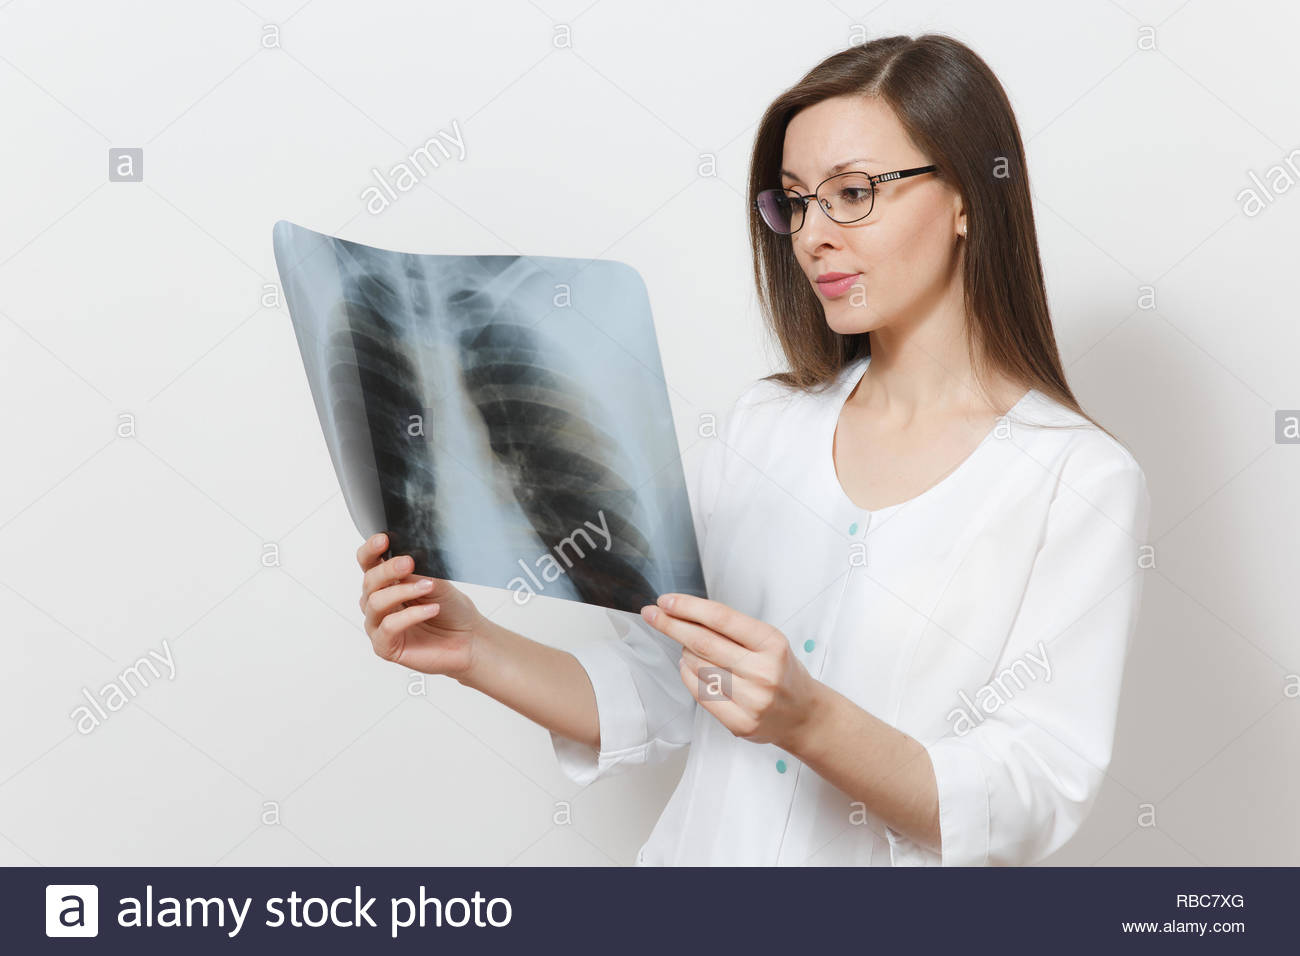 Smiling focused doctor woman with X-ray of lungs, fluorography, roentgen isolated on white background. Female doctor in medical gown stethoscope. Healthcare personnel, medicine concept. Pneumonia. - Stock Image